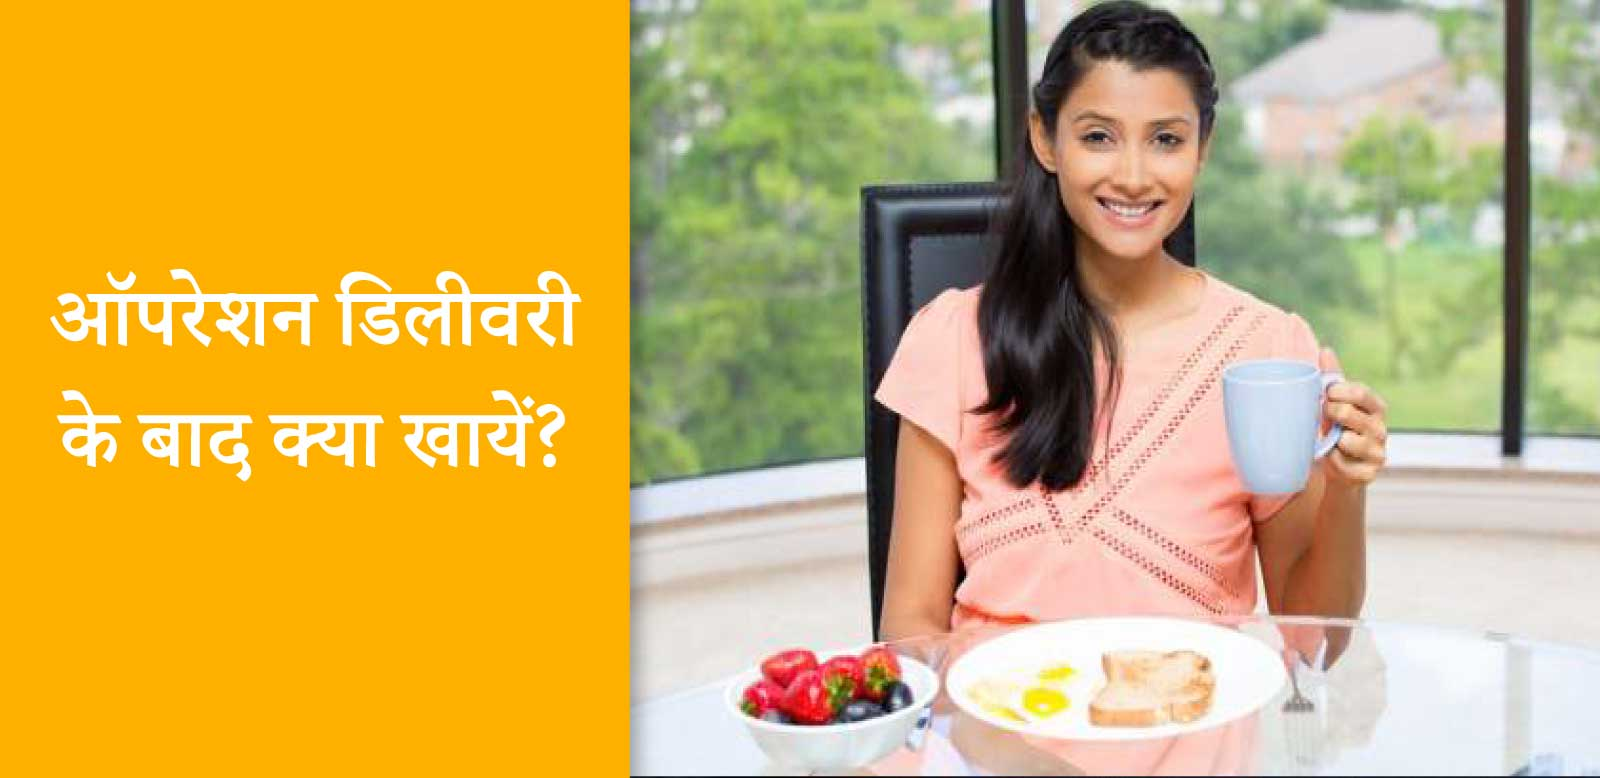 ऑपरेशन डिलीवरी के बाद क्या खायें? (What to eat after Cesarean Delivery in hindi)